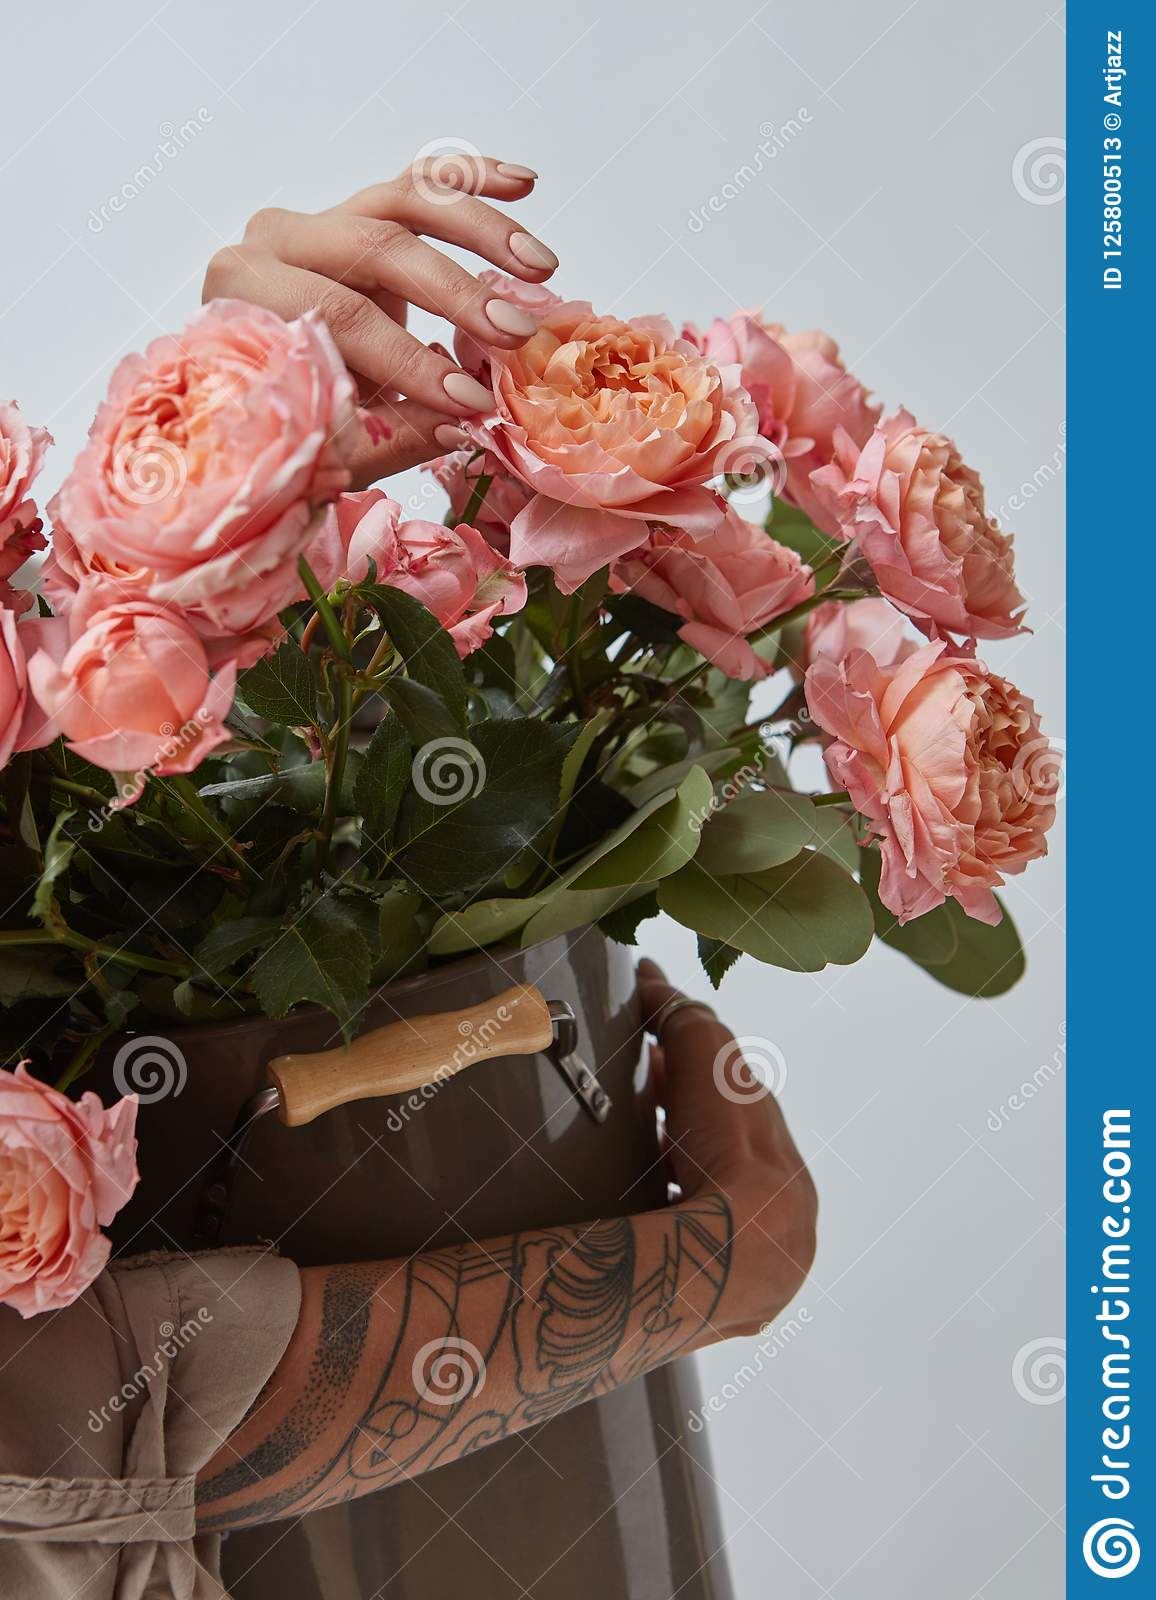 Female hands with tattoos holding a large brown vase with pink roses on a gray background. Flower shop